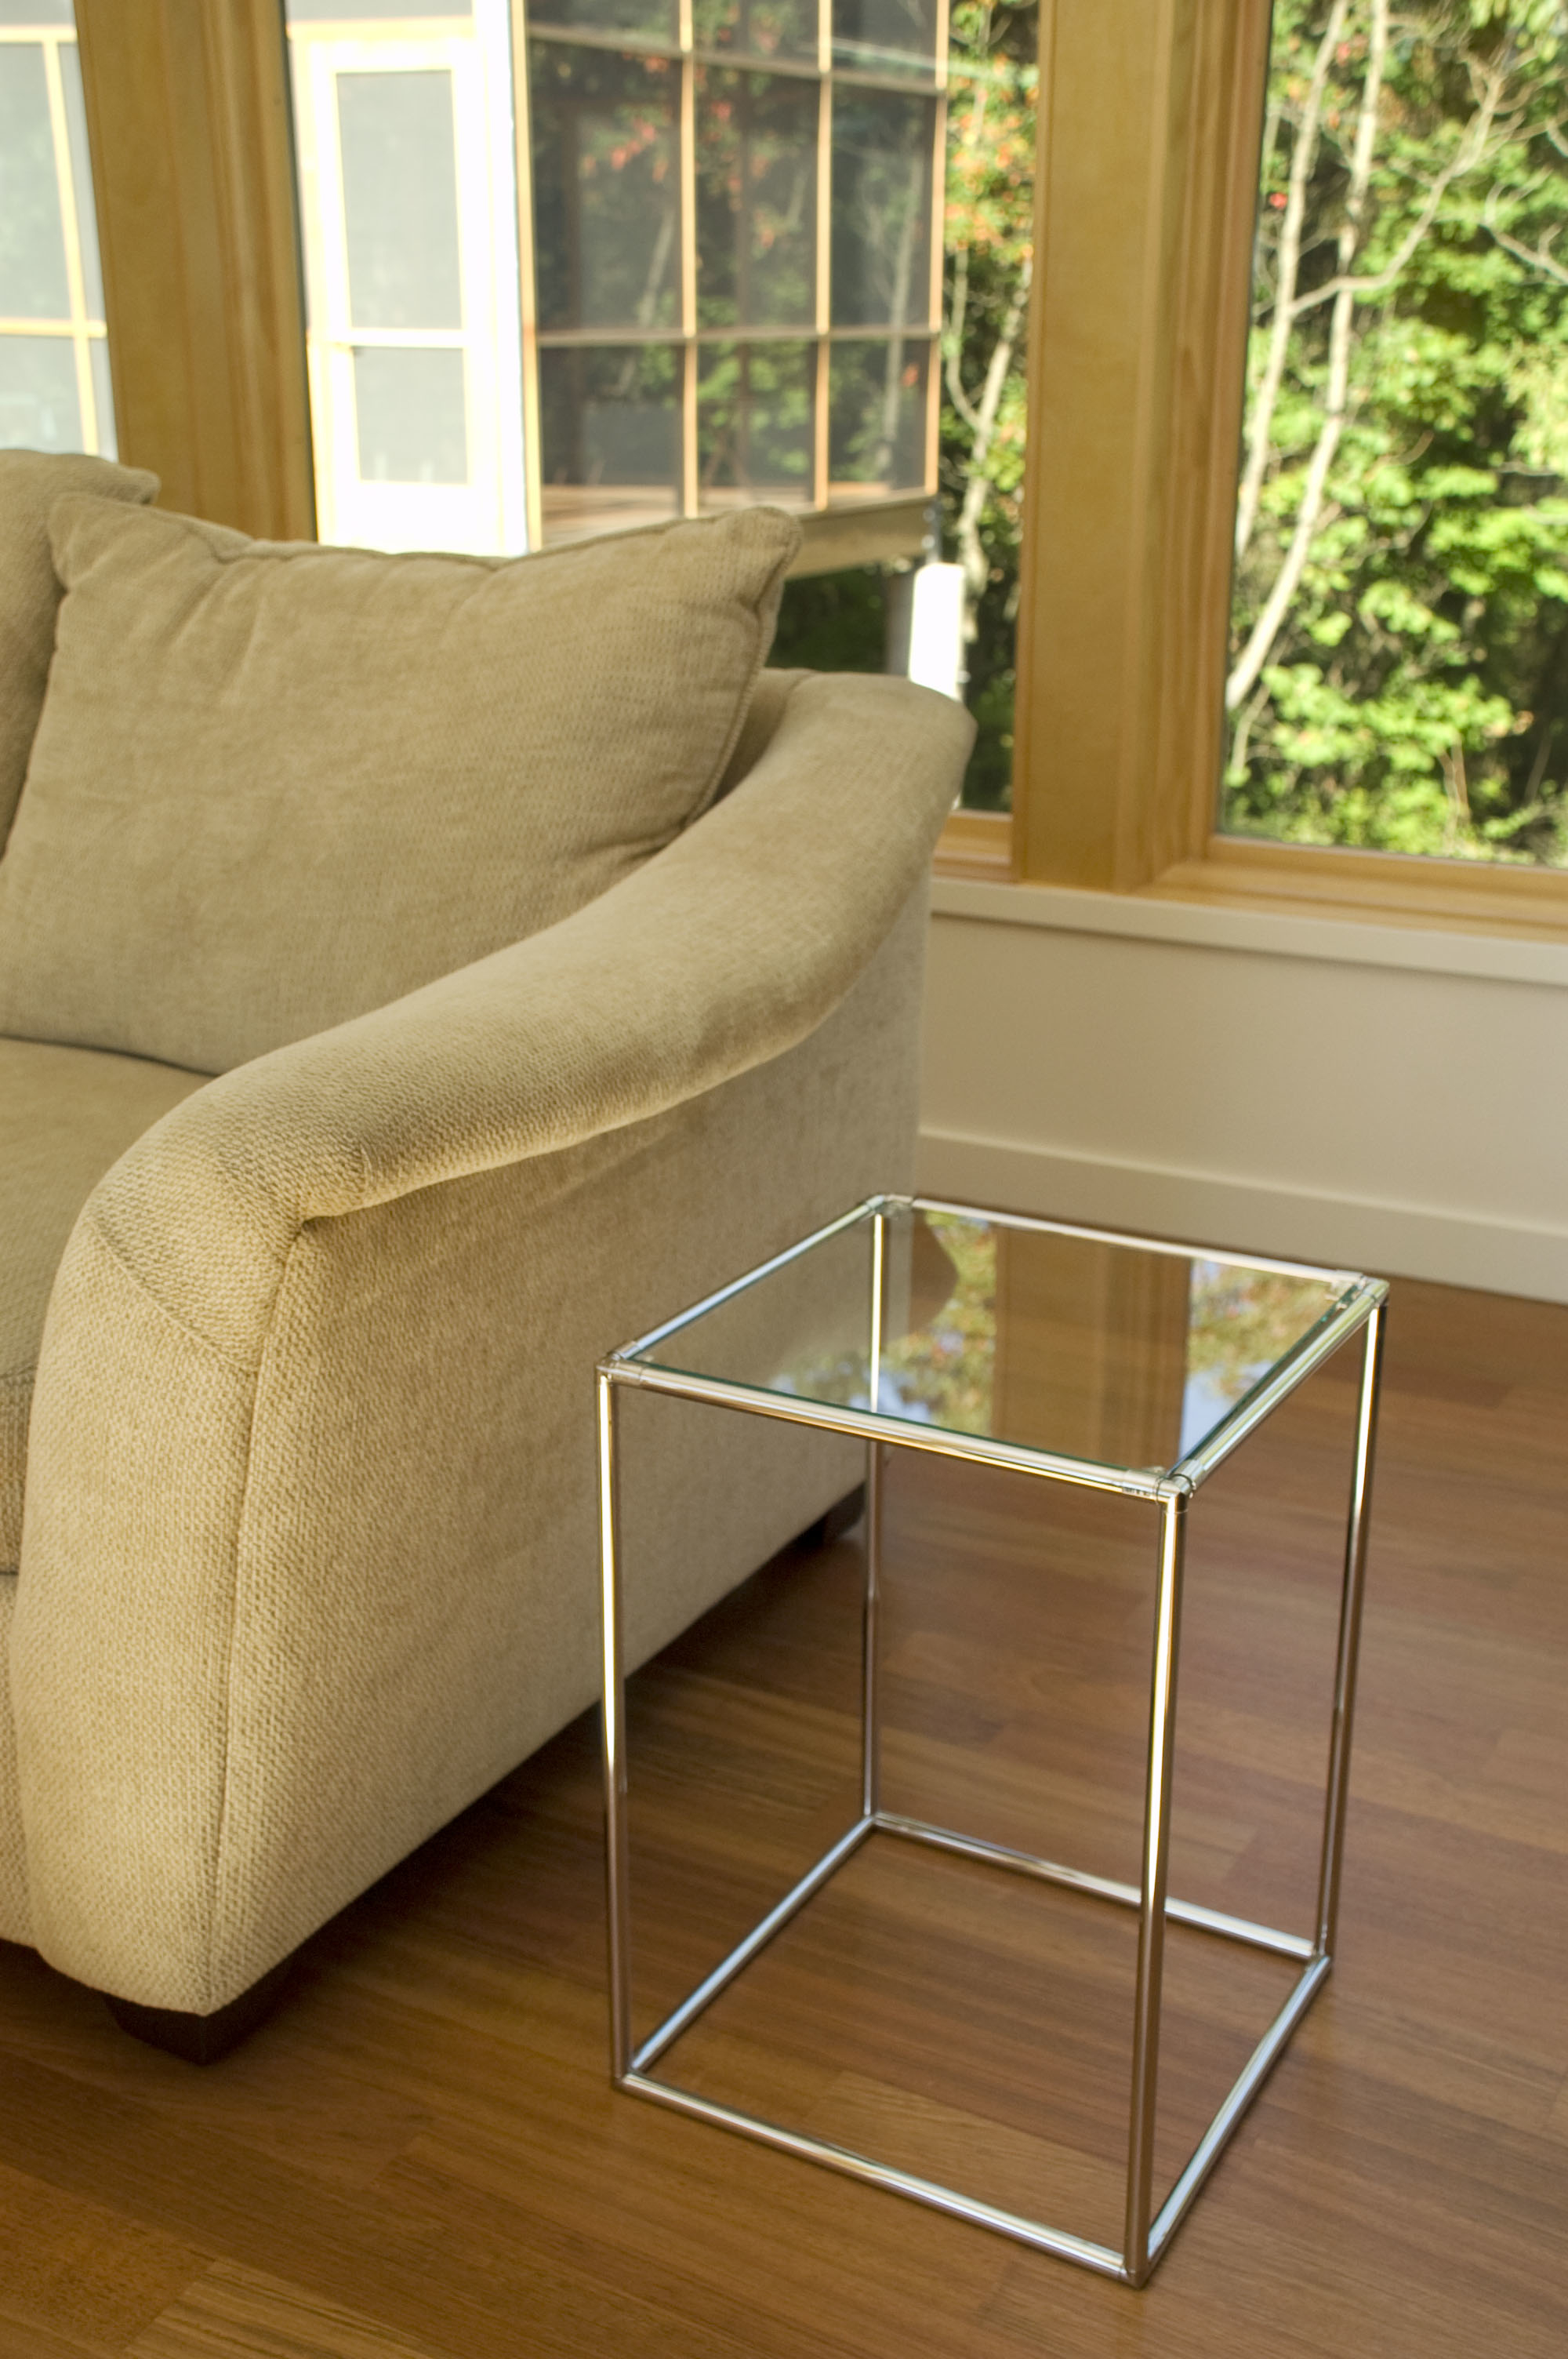 Bunch Table With Glass Top 59d683ecf486b7147a68b403